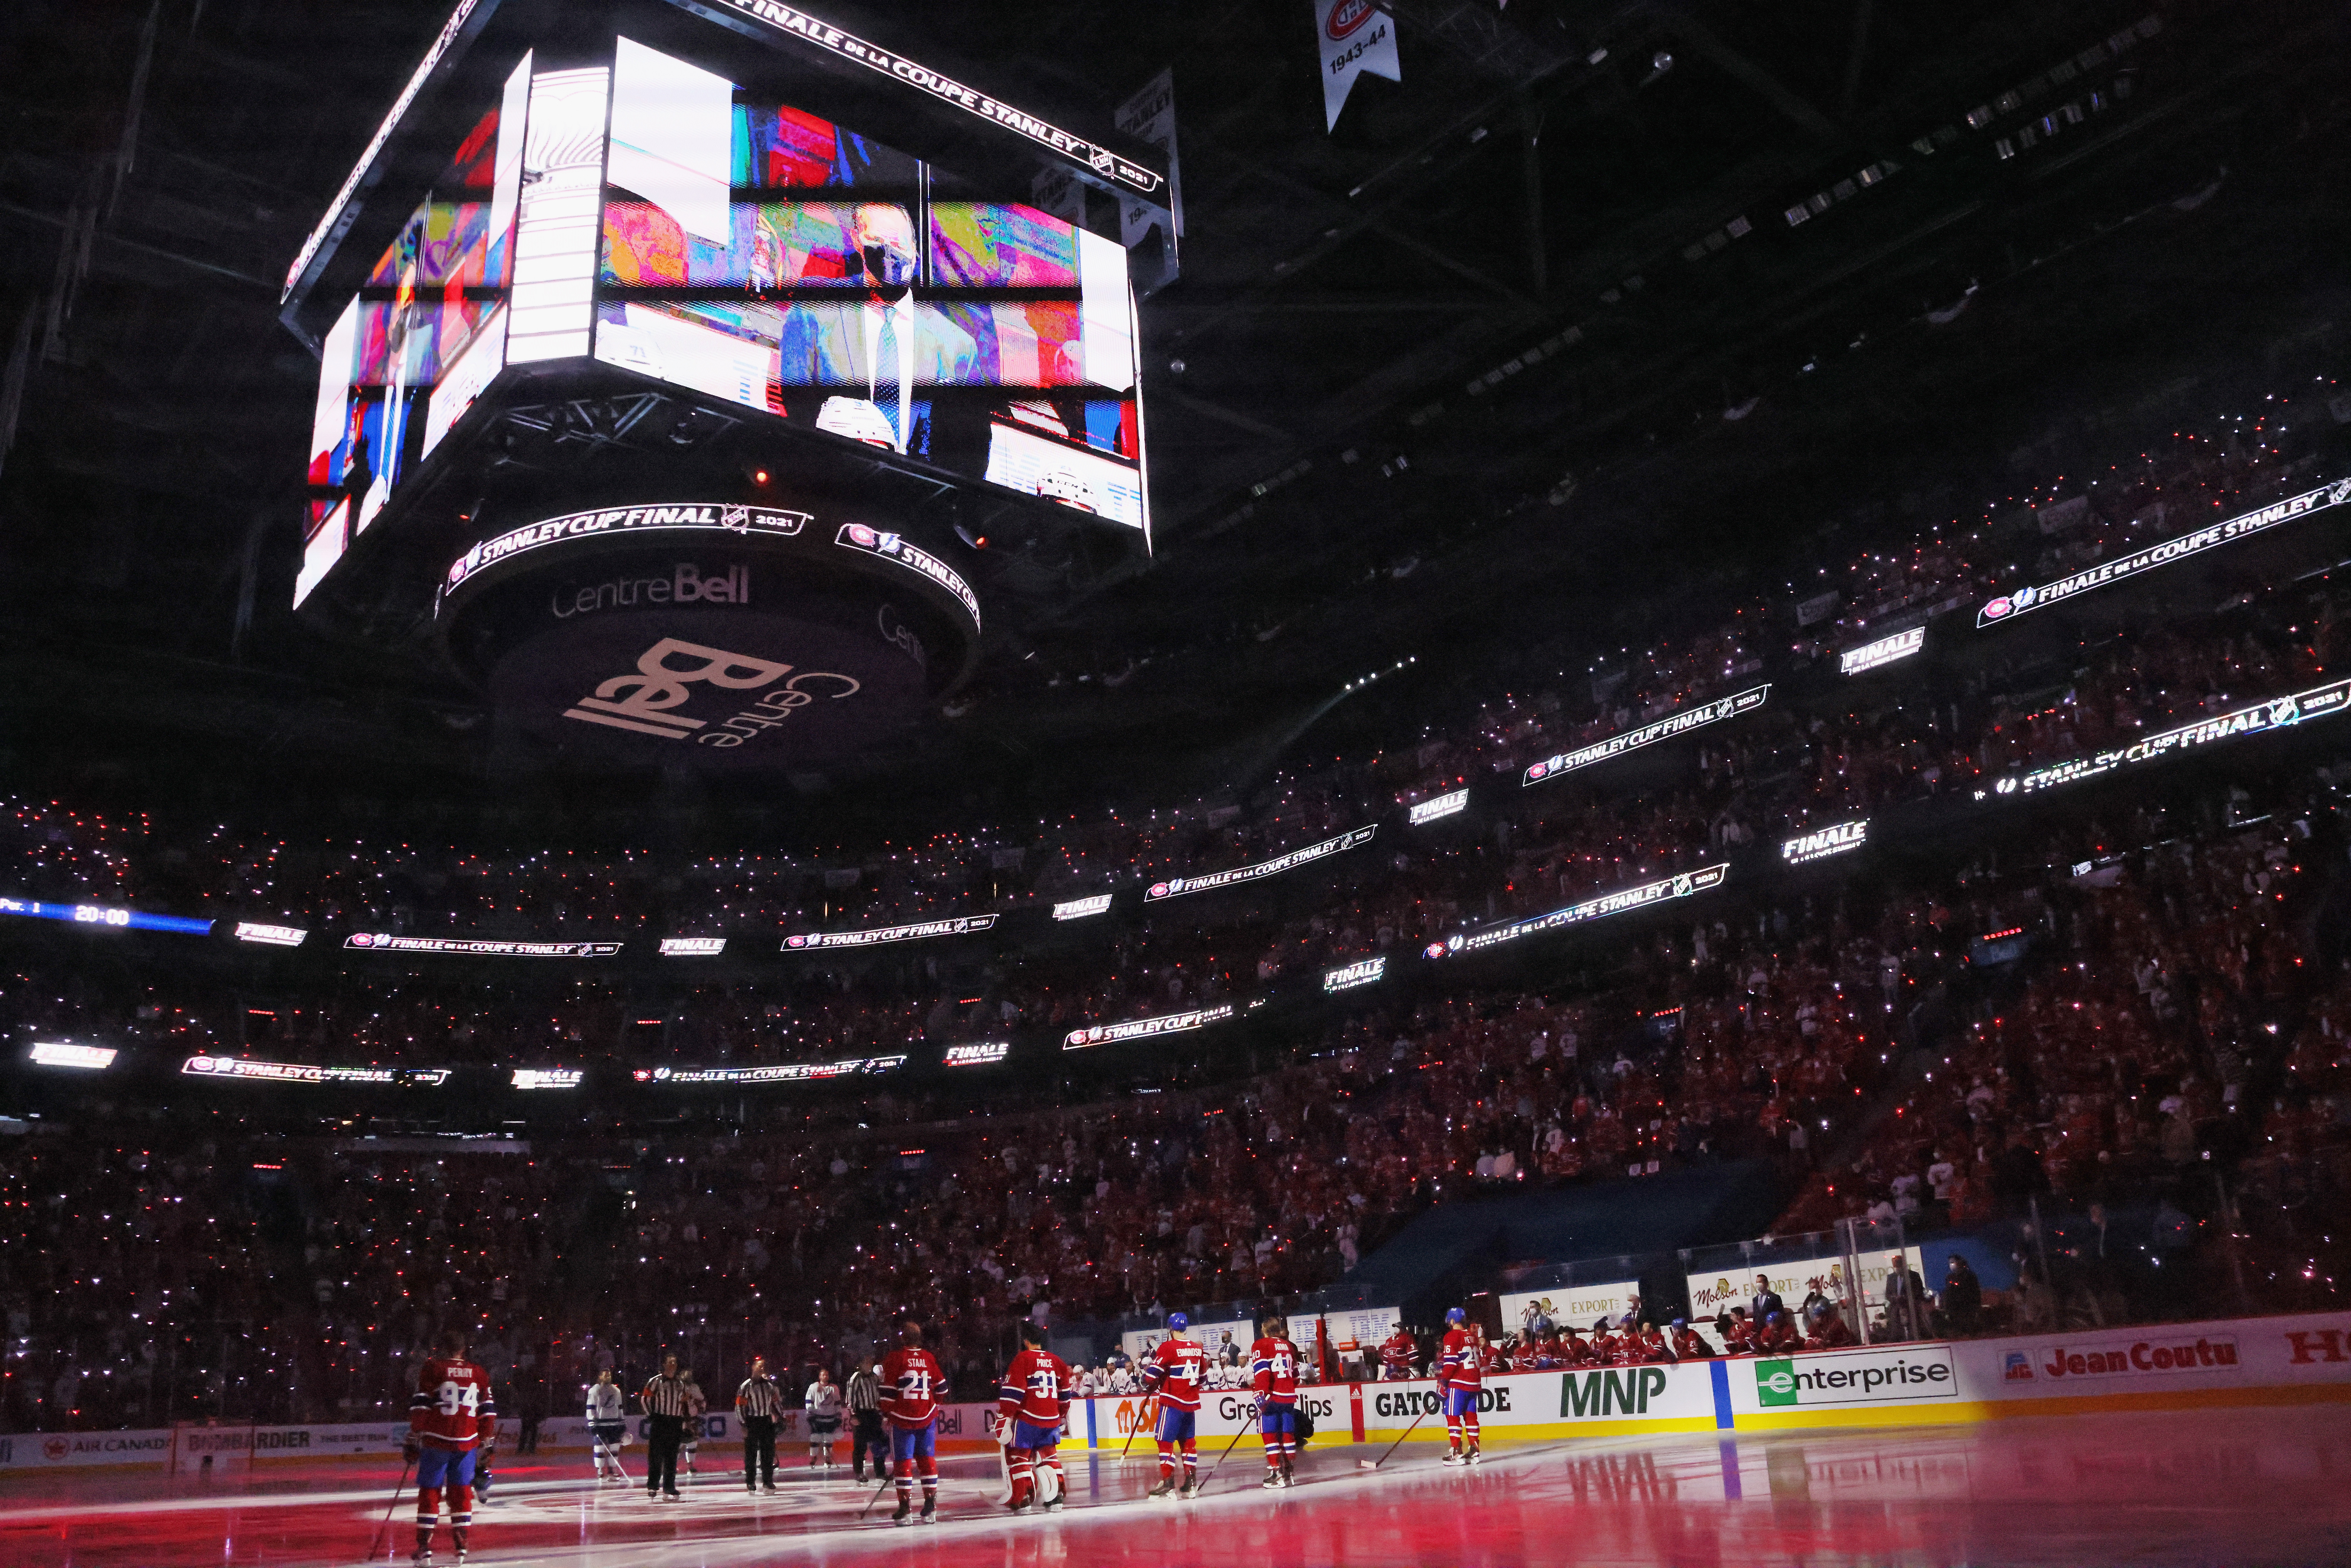 The Tampa Bay Lightning and the Montreal Canadiens stand at attention prior to Game Three of the 2021 NHL Stanley Cup Final at the Bell Centre on July 02, 2021 in Montreal, Quebec, Canada. The Lightning defeated the Canadiens 6-3.